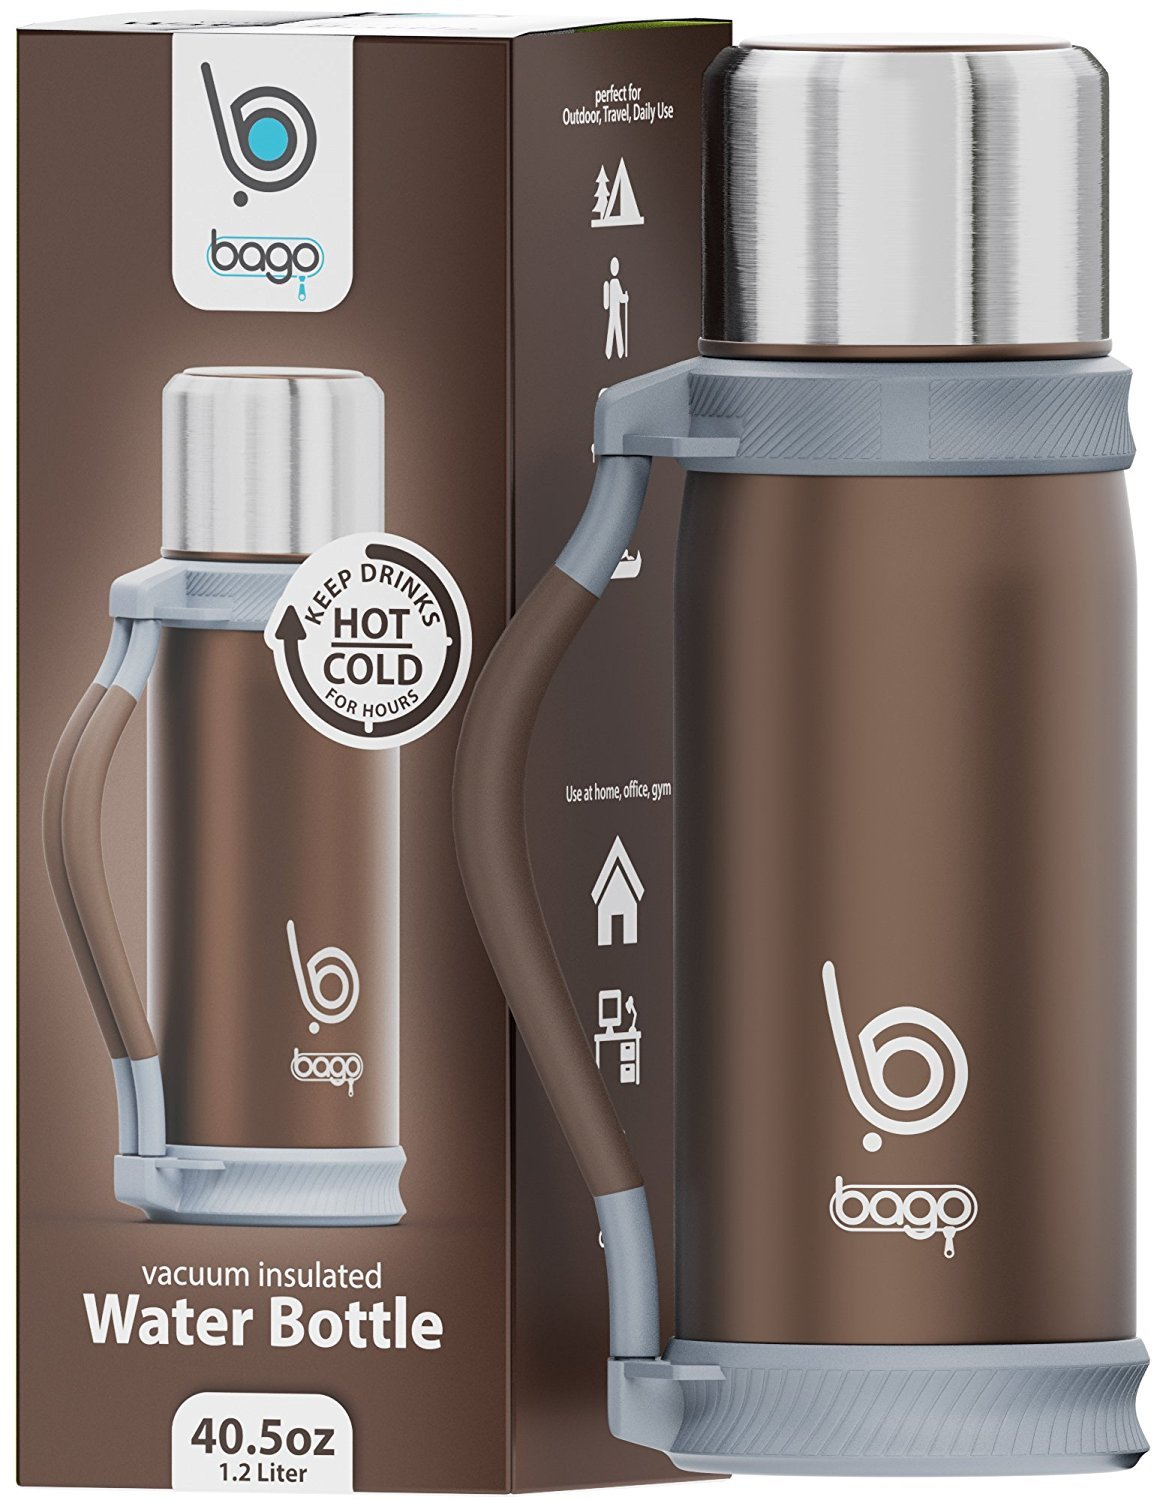 bago Insulated Water Bottle - Keep Drinks Hot/Cold Hours. Best Travel, Sport, Camping, Runners Personal Daily Use - 1.2 Liter Stainless Steel Vacuum Cup Carrier